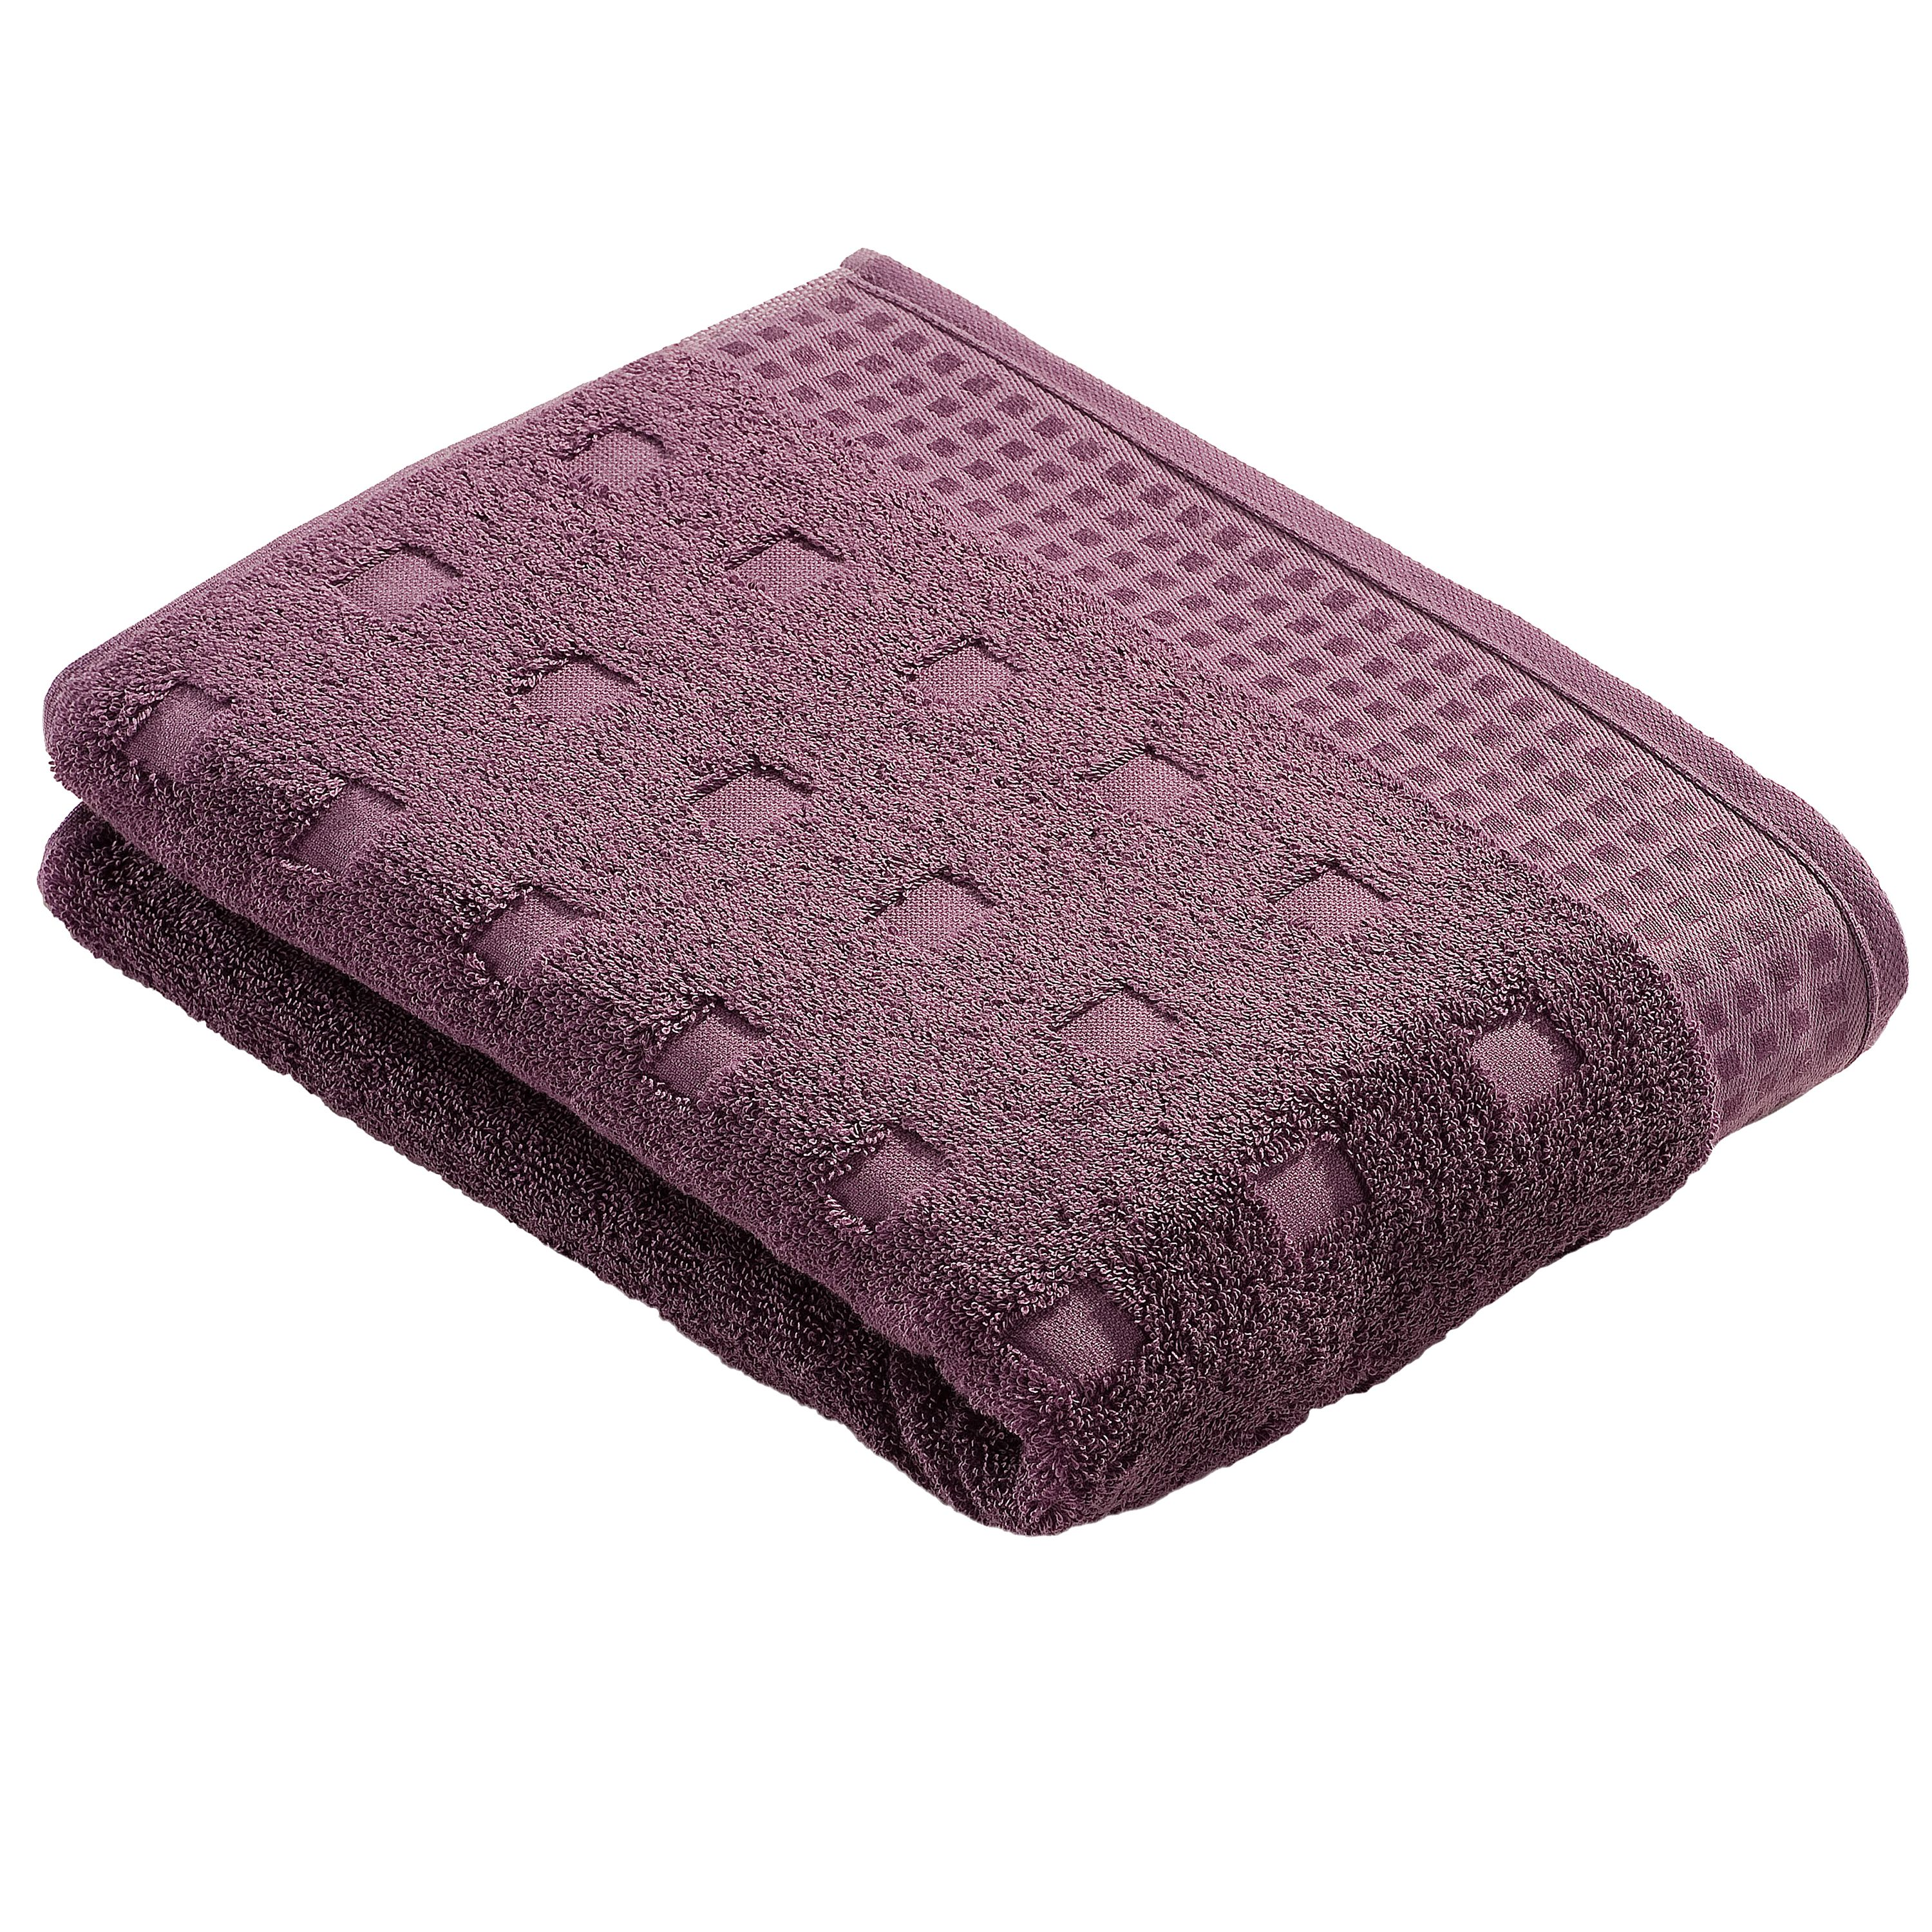 Country style  towels in plum